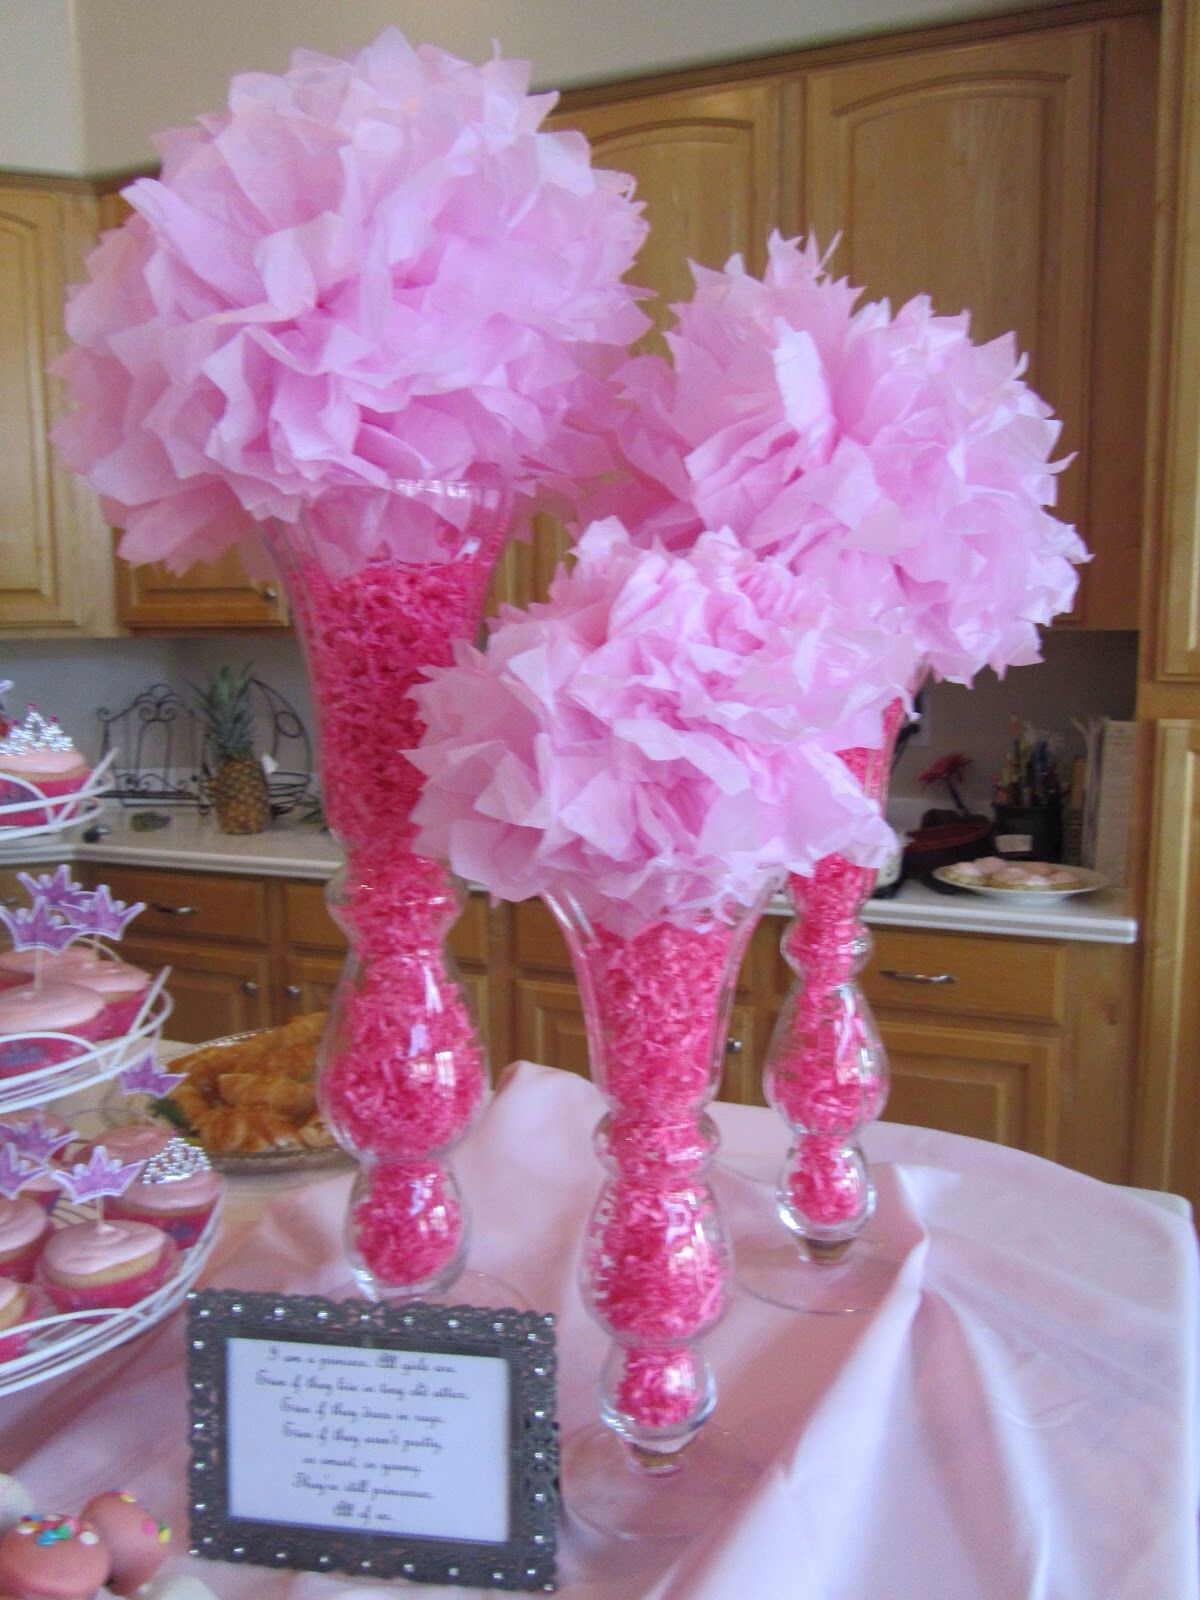 Pink baby shower centerpiece tall vases pink filler paper pink pink baby shower centerpiece tall vases pink filler paper pink tissue balls reviewsmspy